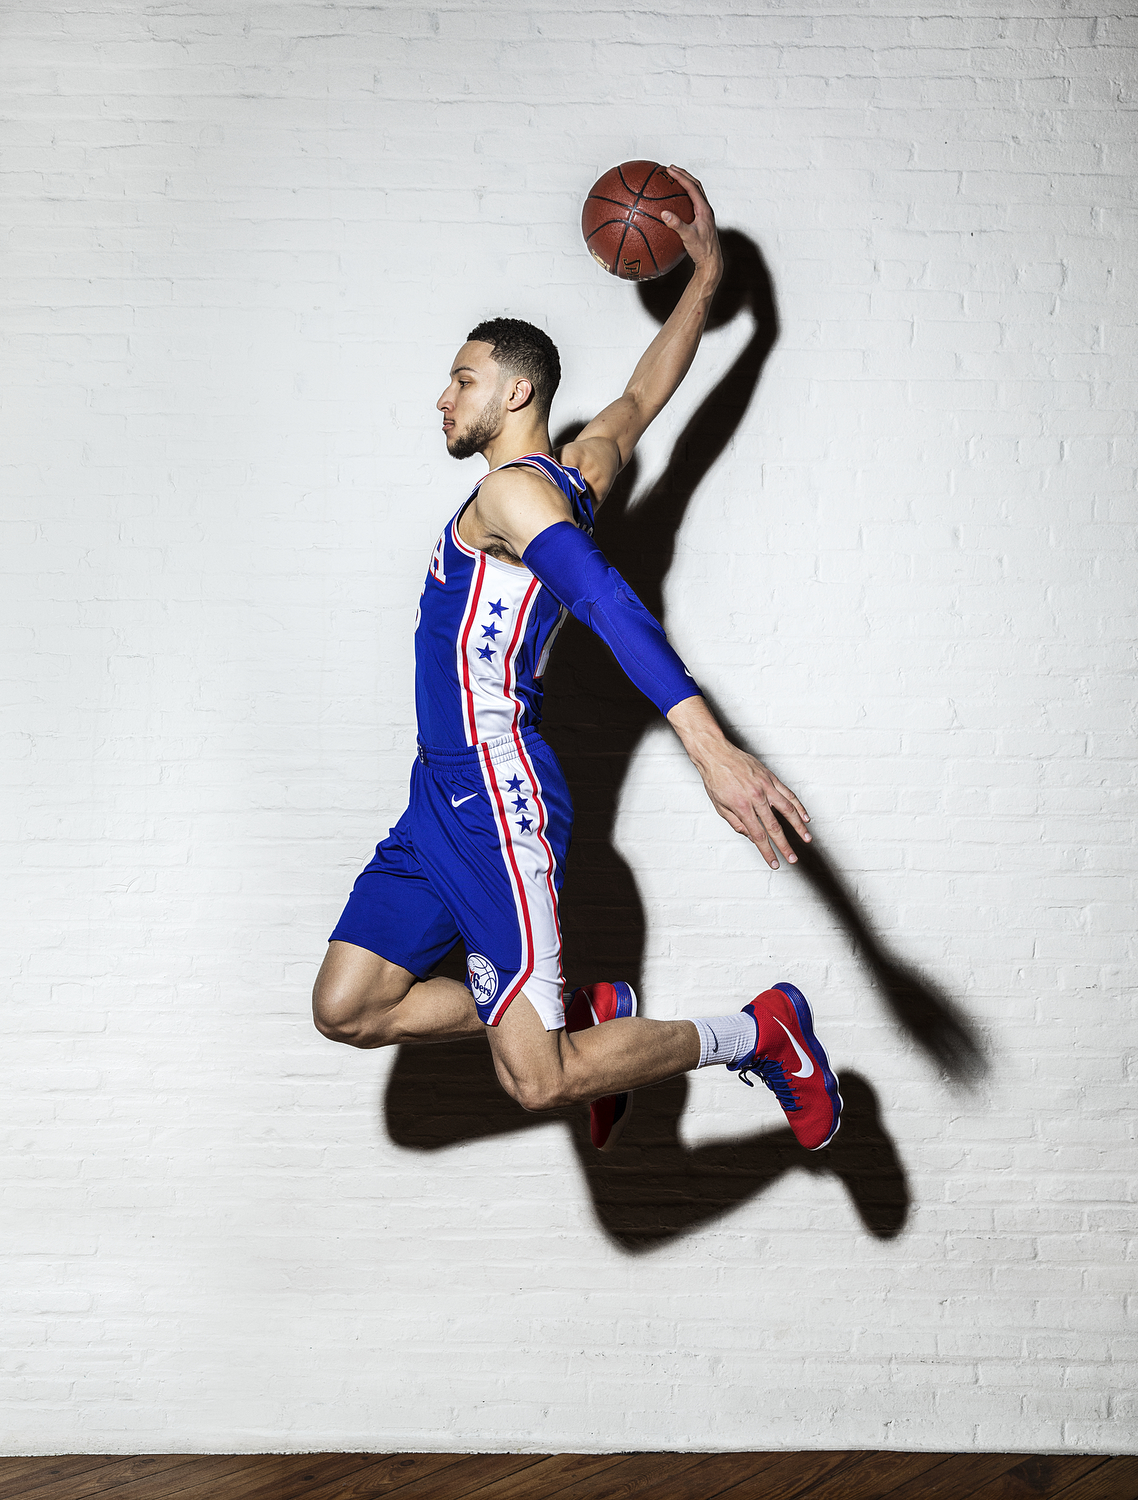 Sports Photographer STEVE BOYLE - Ben Simmons, Philadelphia 76ers for Men